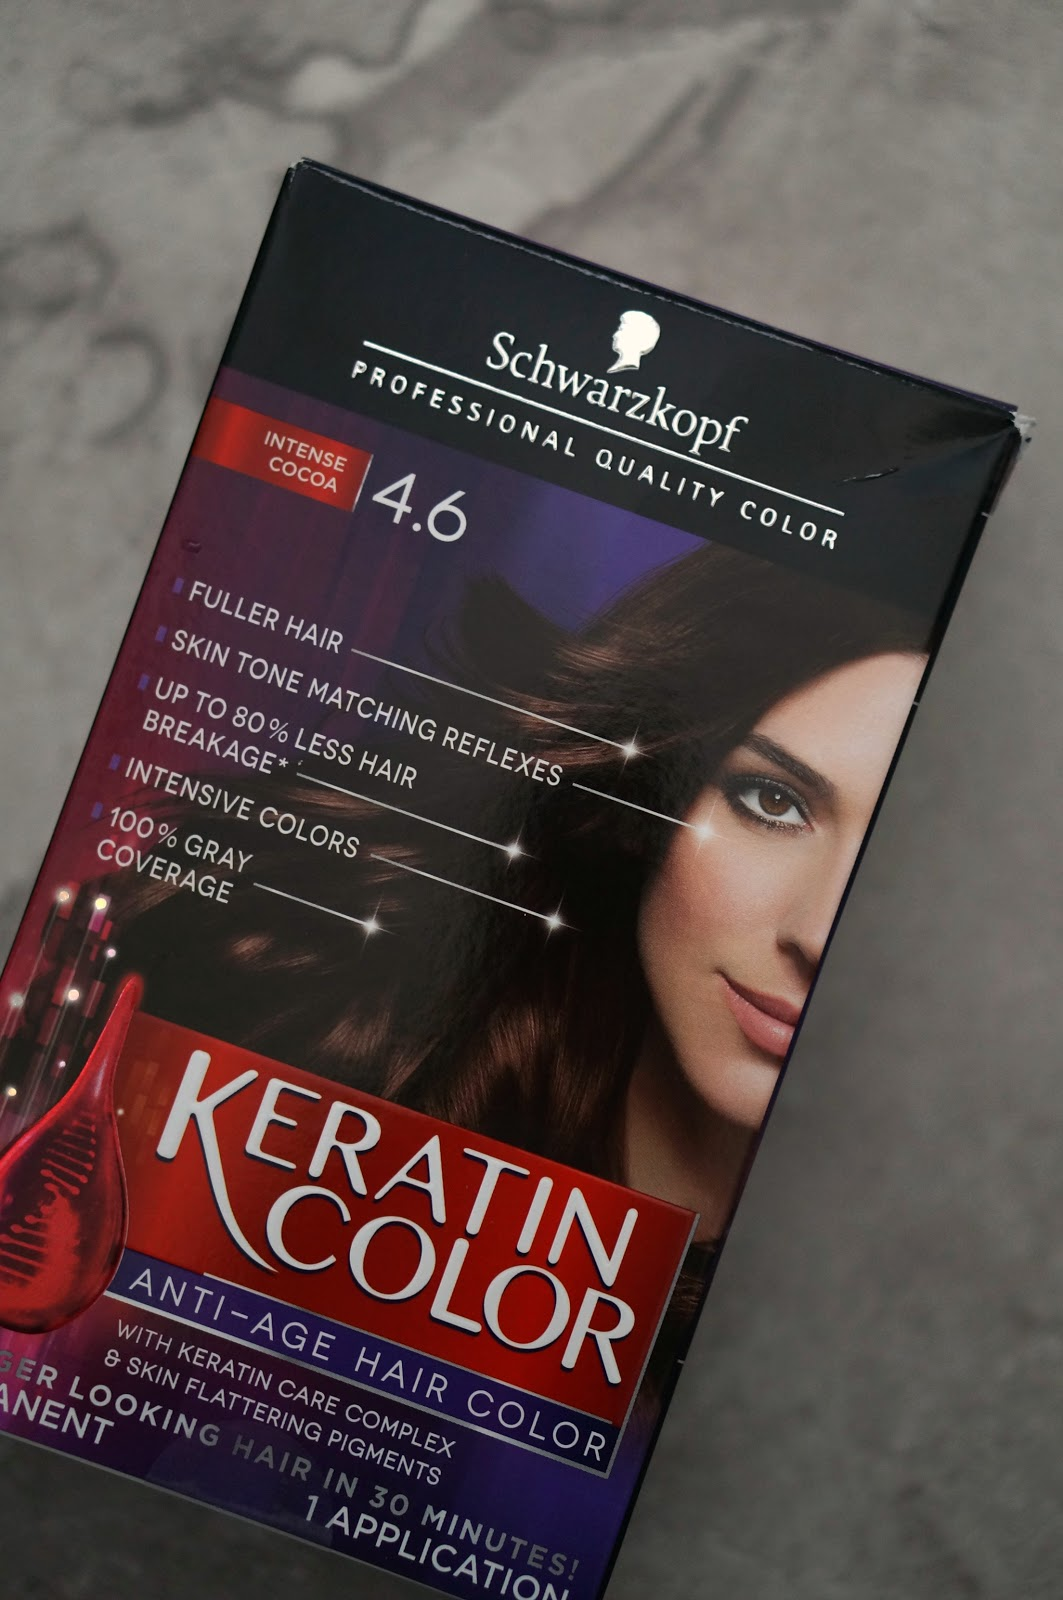 Intense Cocoa Hair Dye: My Hair Color Routine with Schwarzkopf by popular North Carolina beauty blogger Rebecca Lately